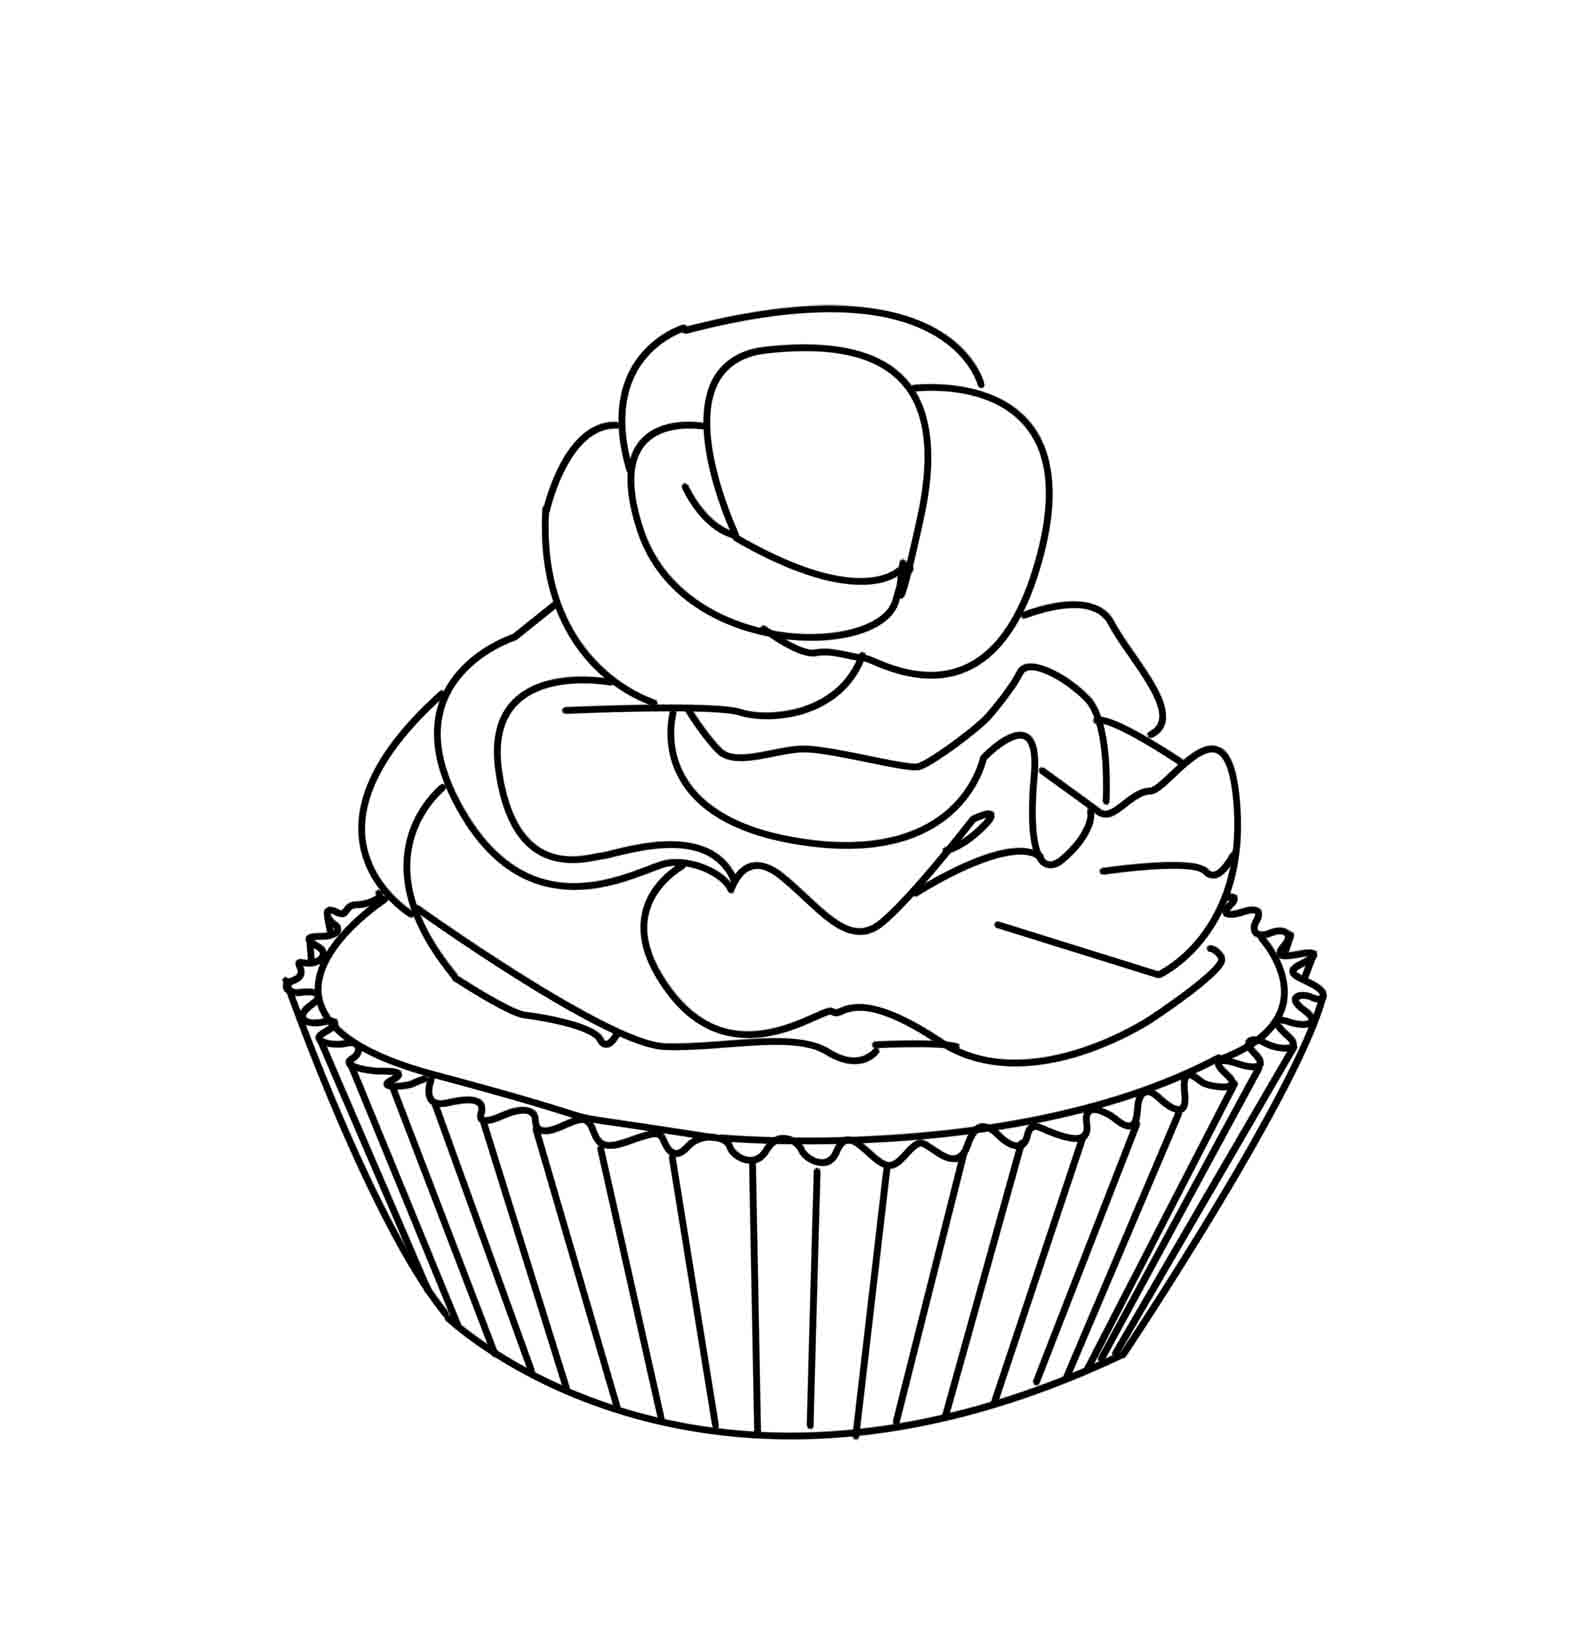 cupcake-coloring-page-0032-q1